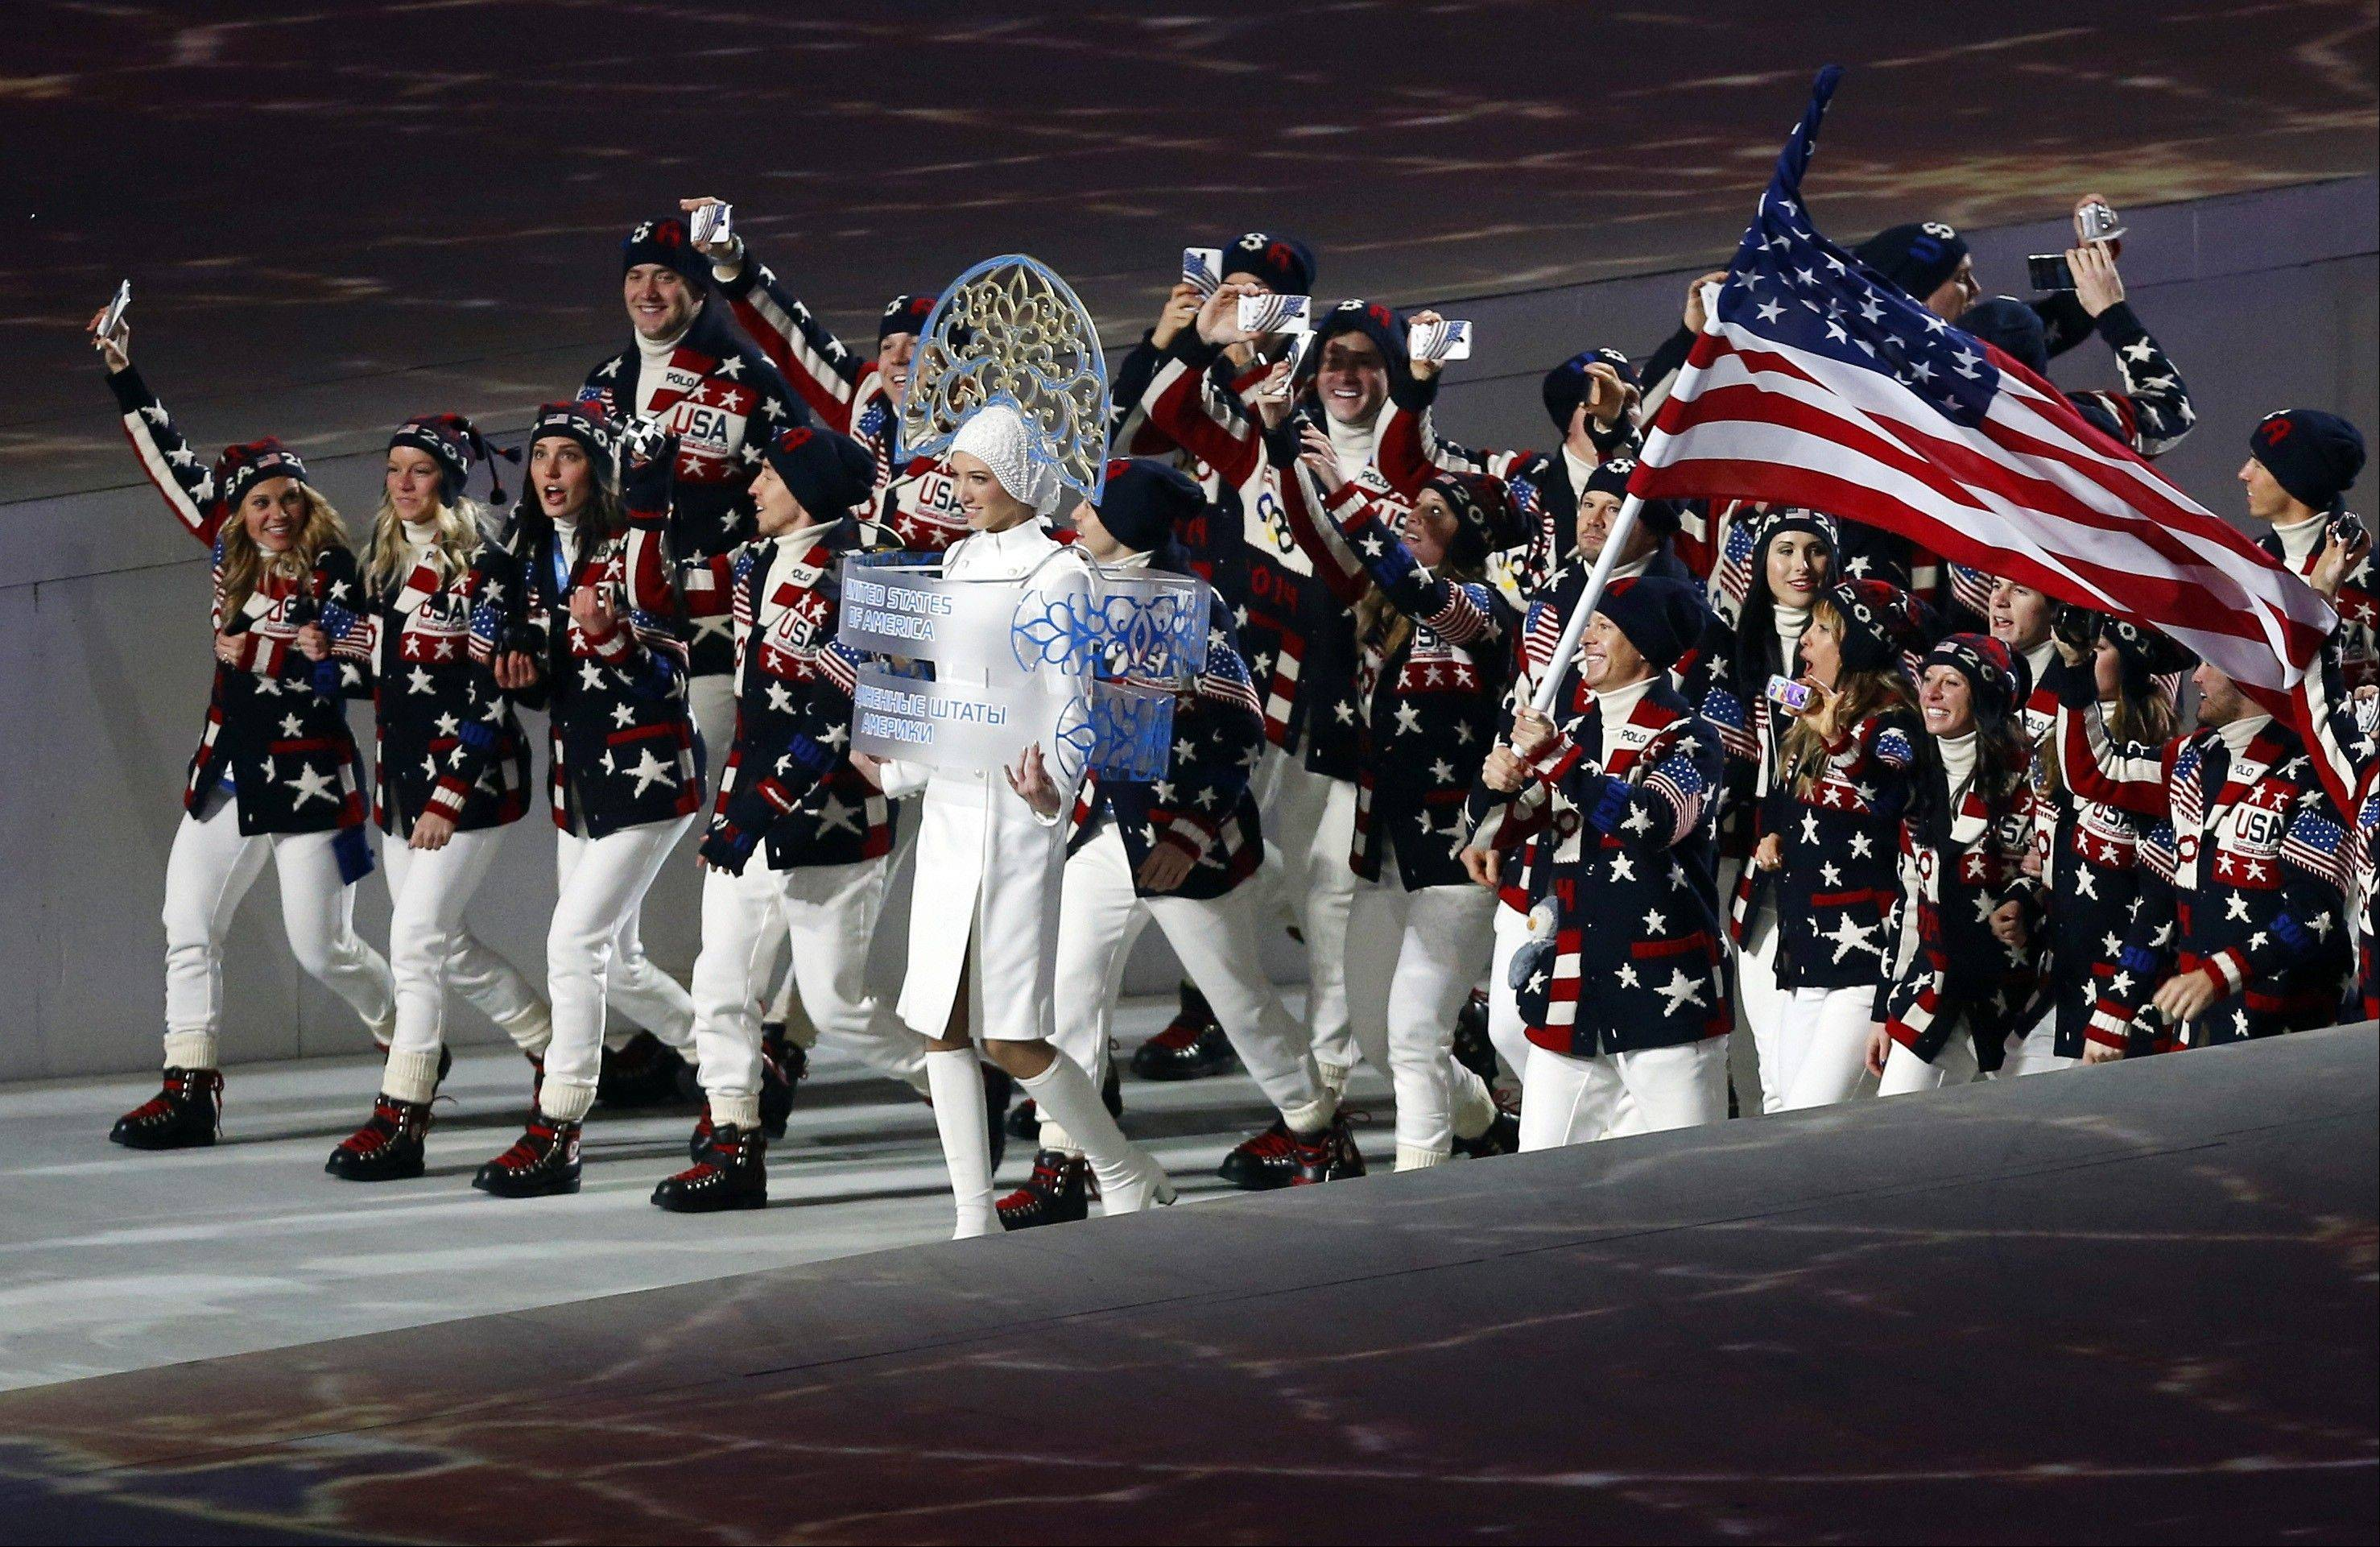 Todd Lodwick of the United States carries his country flag as the team arrives during the opening ceremony.